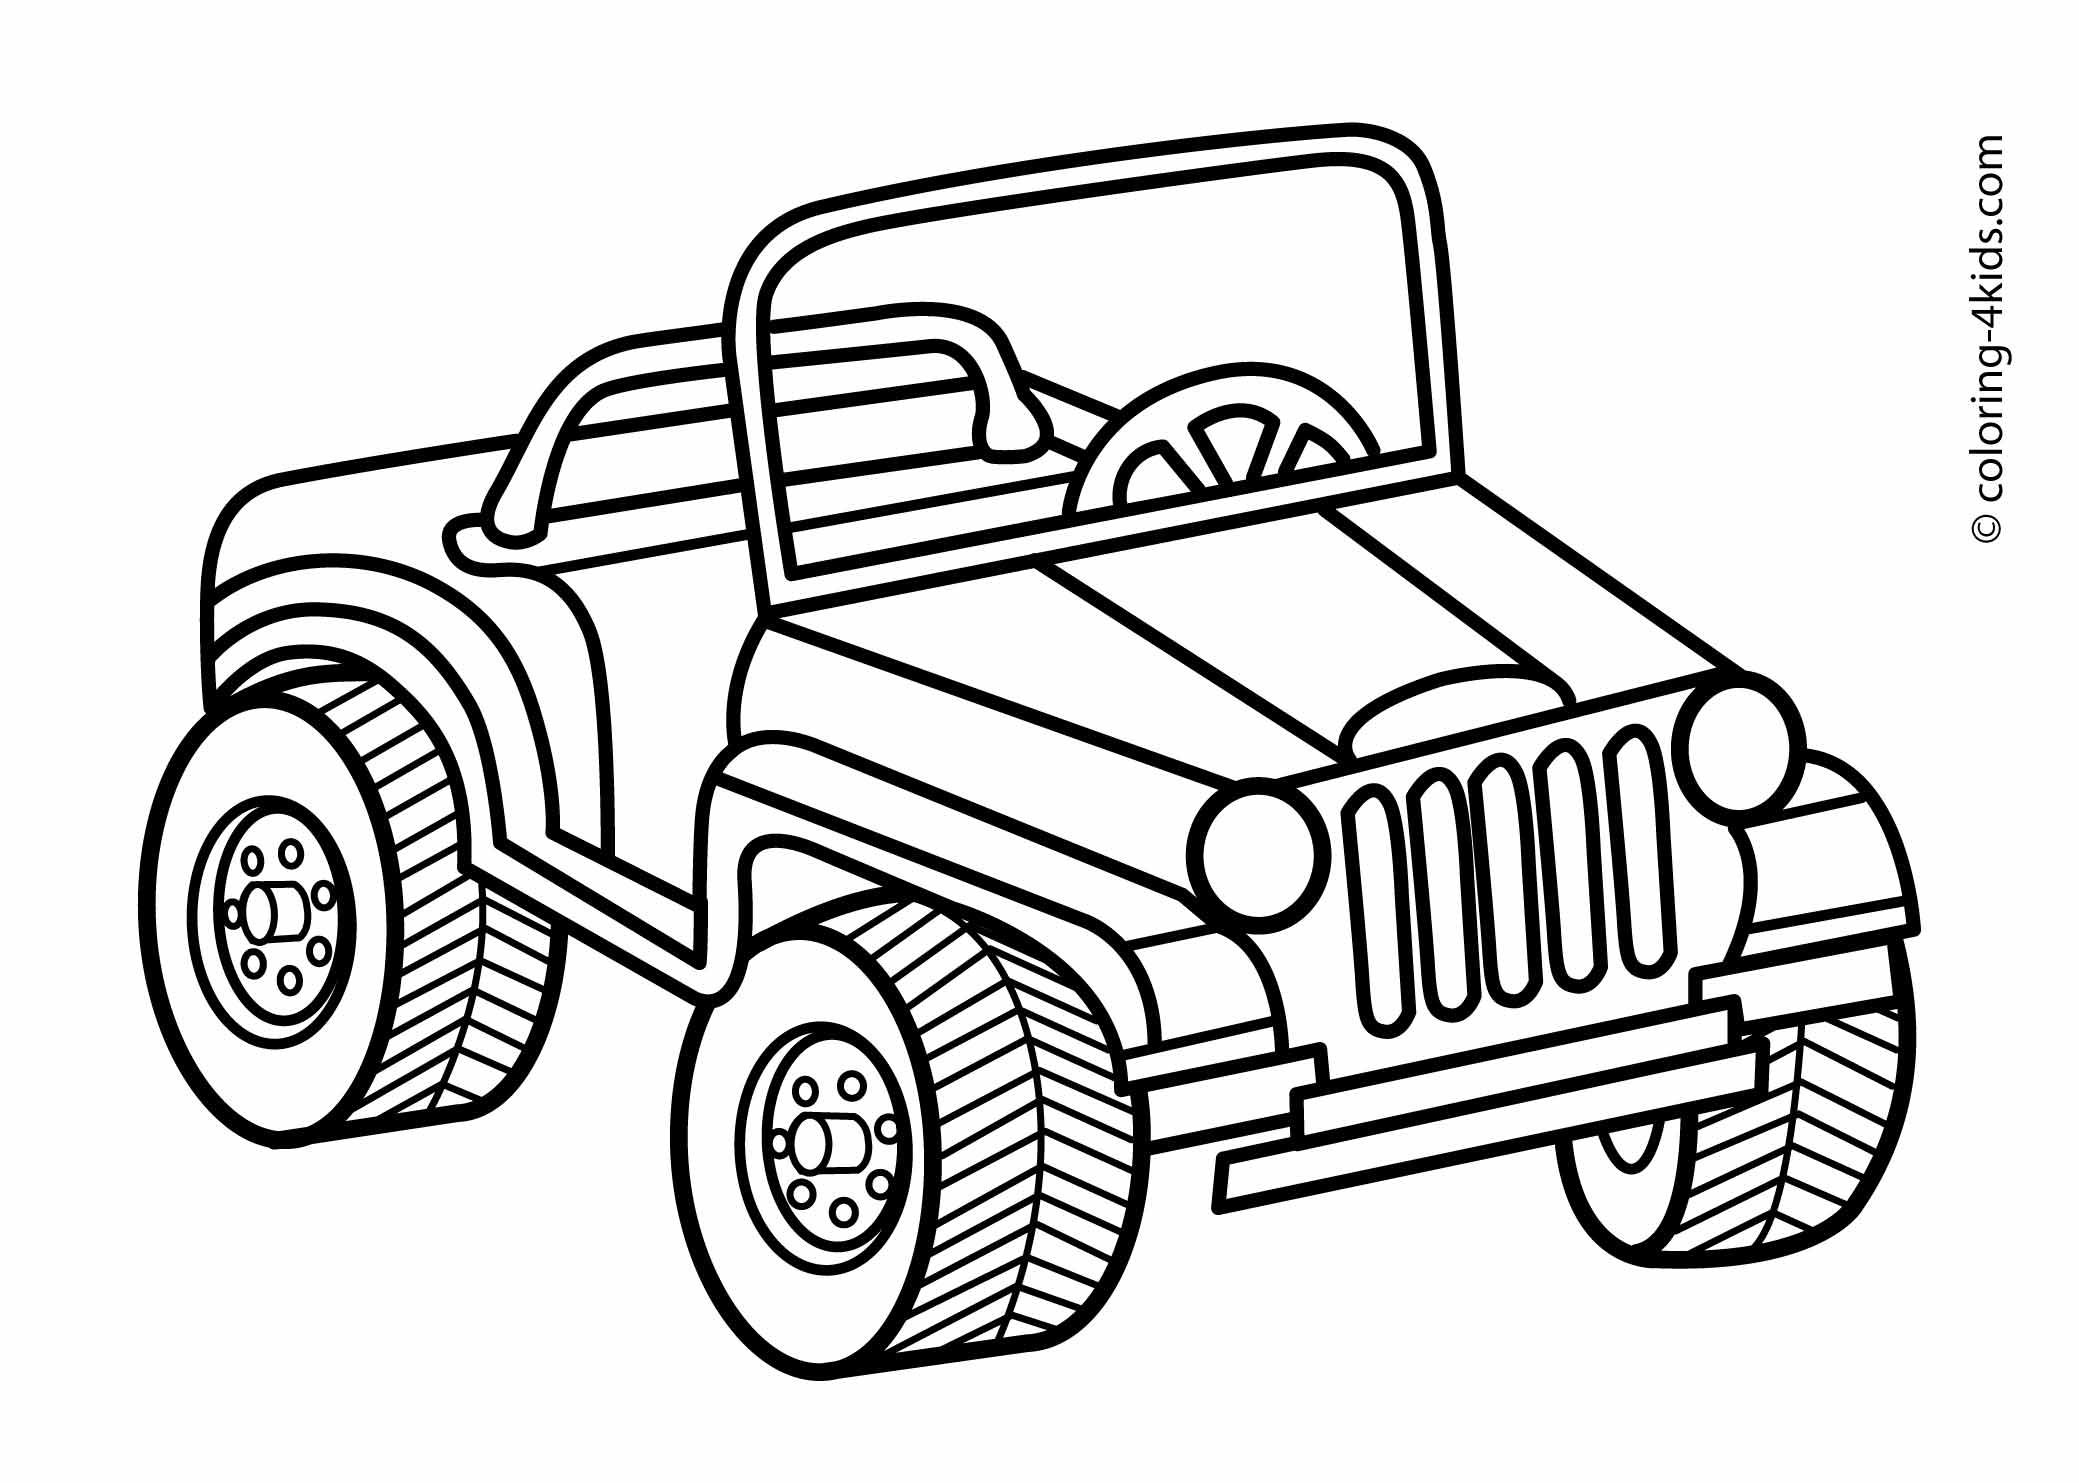 2079x1483 Exquisite Design Coloring Page Jeep Jeep Transportation Coloring